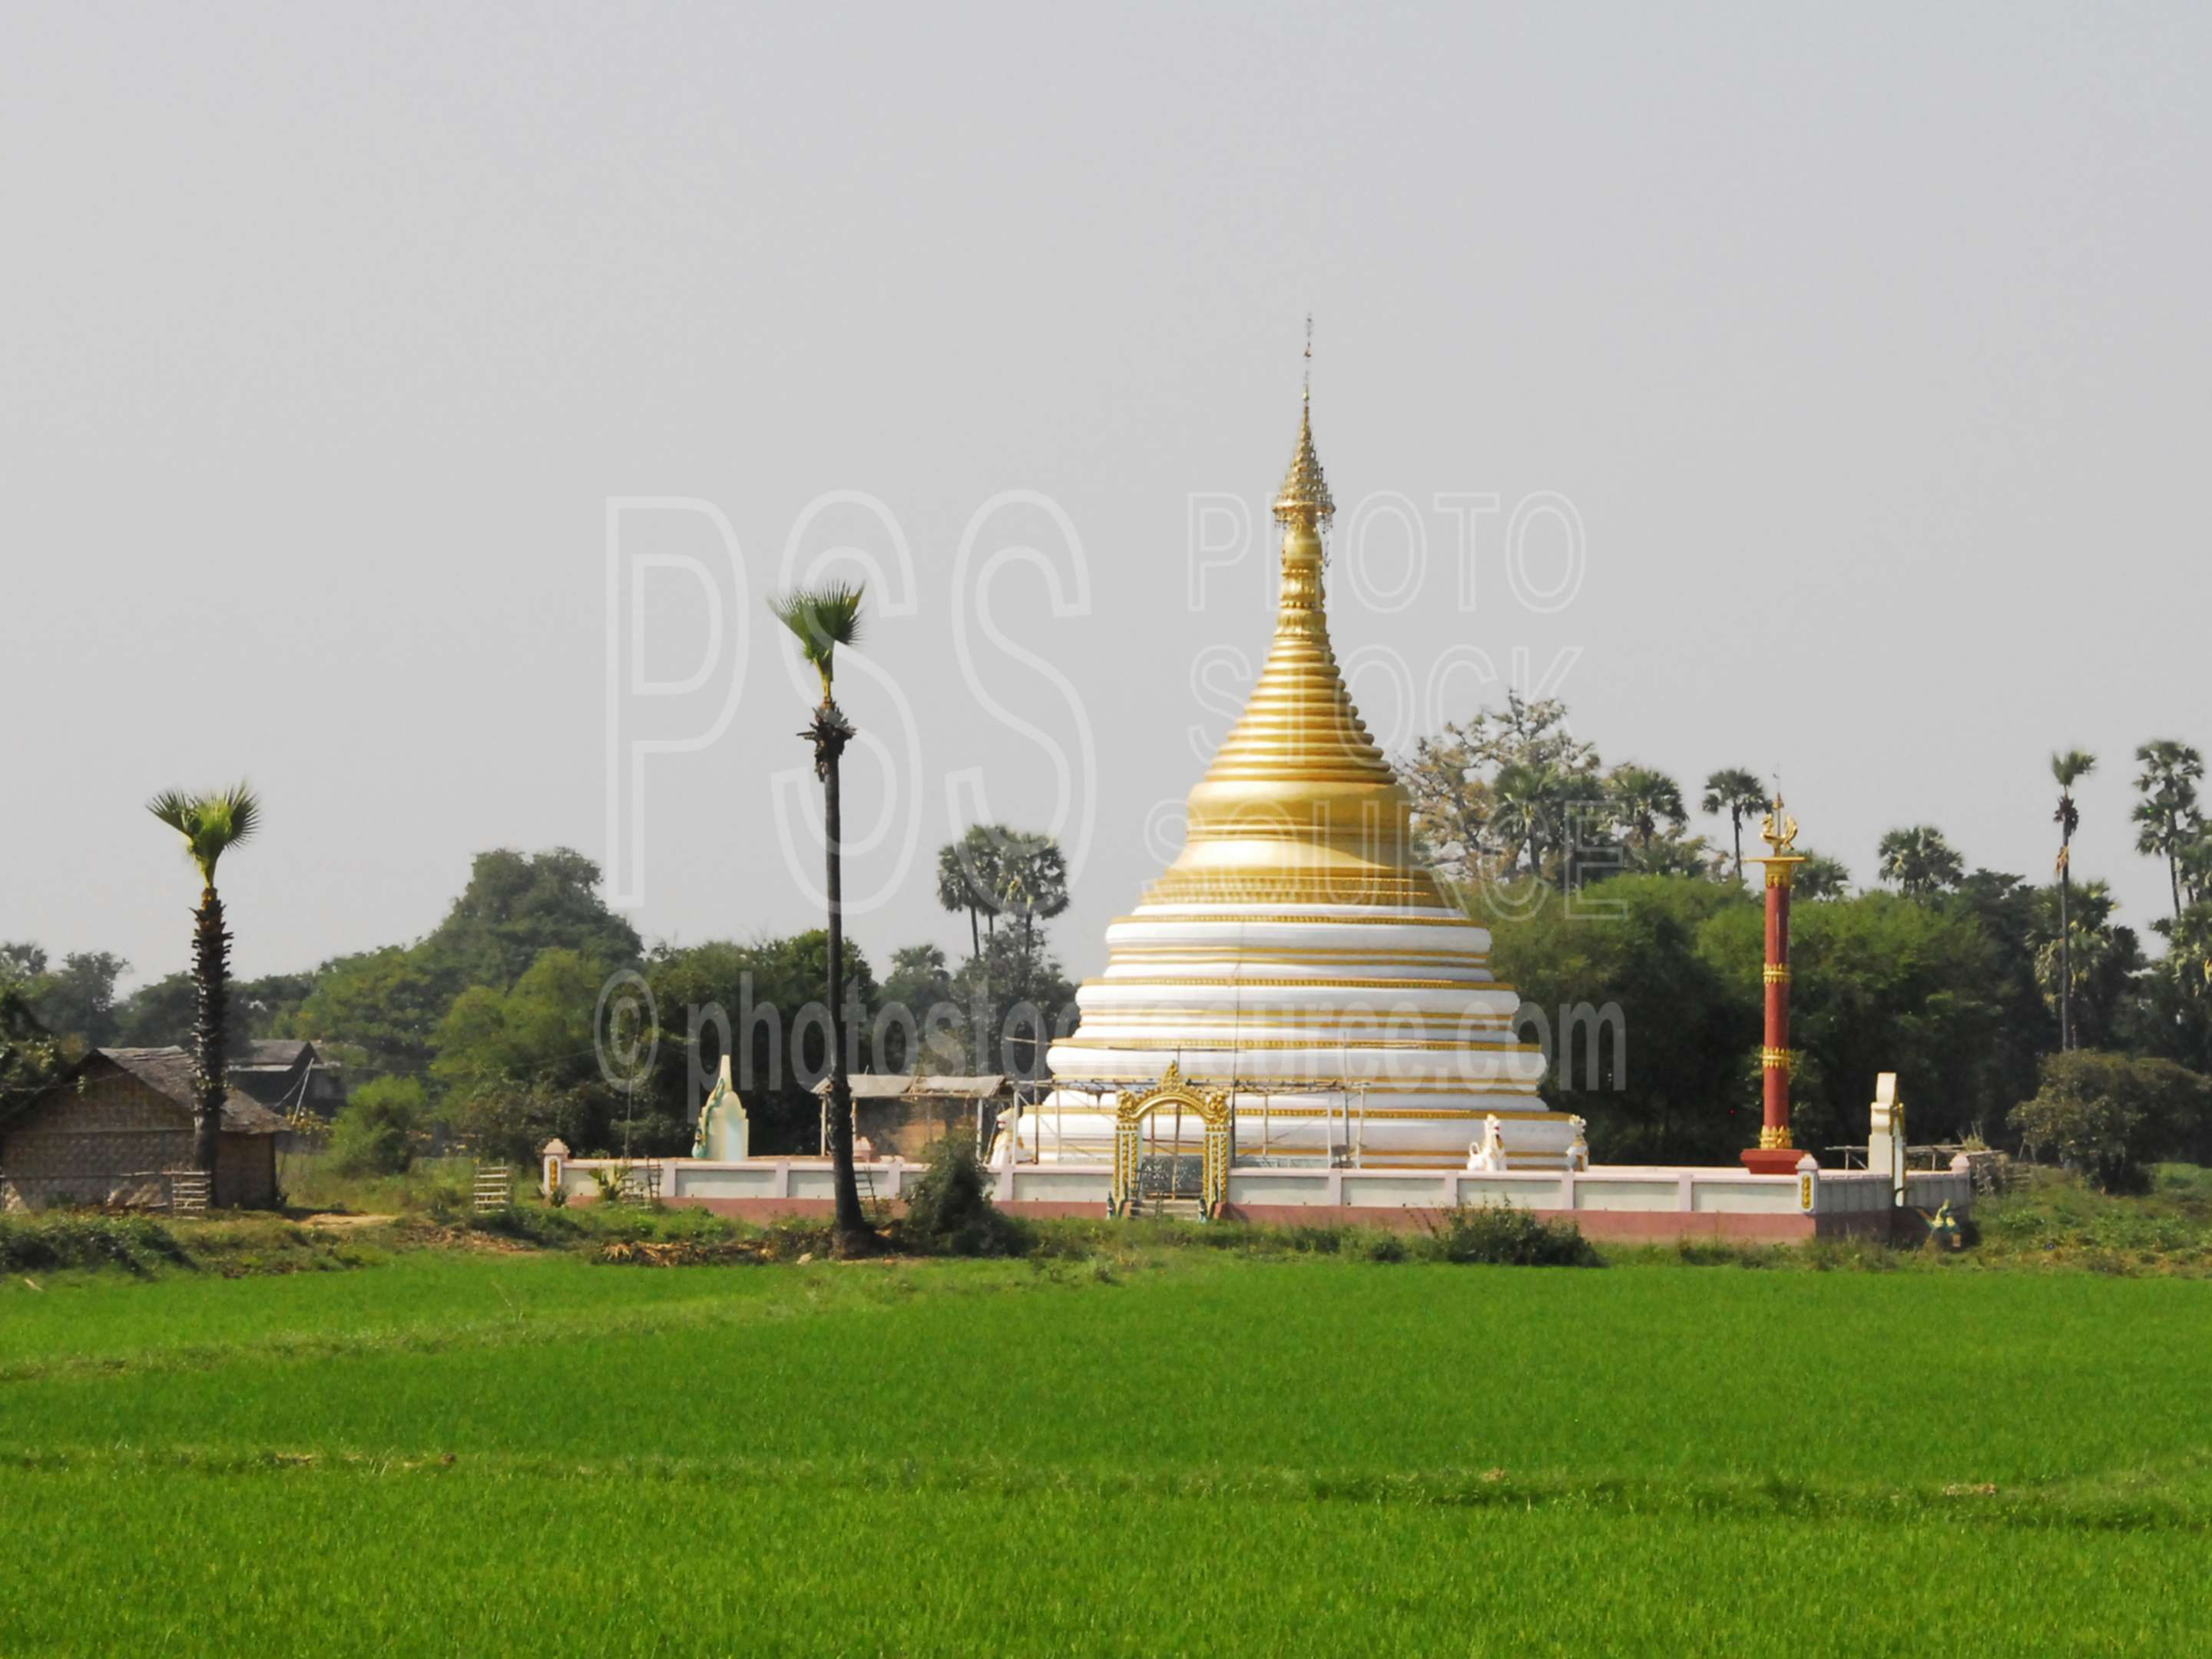 Rice Field Pagoda,myanmar,inwa,hathawaddy,ava,temple,rice,field,pagoda